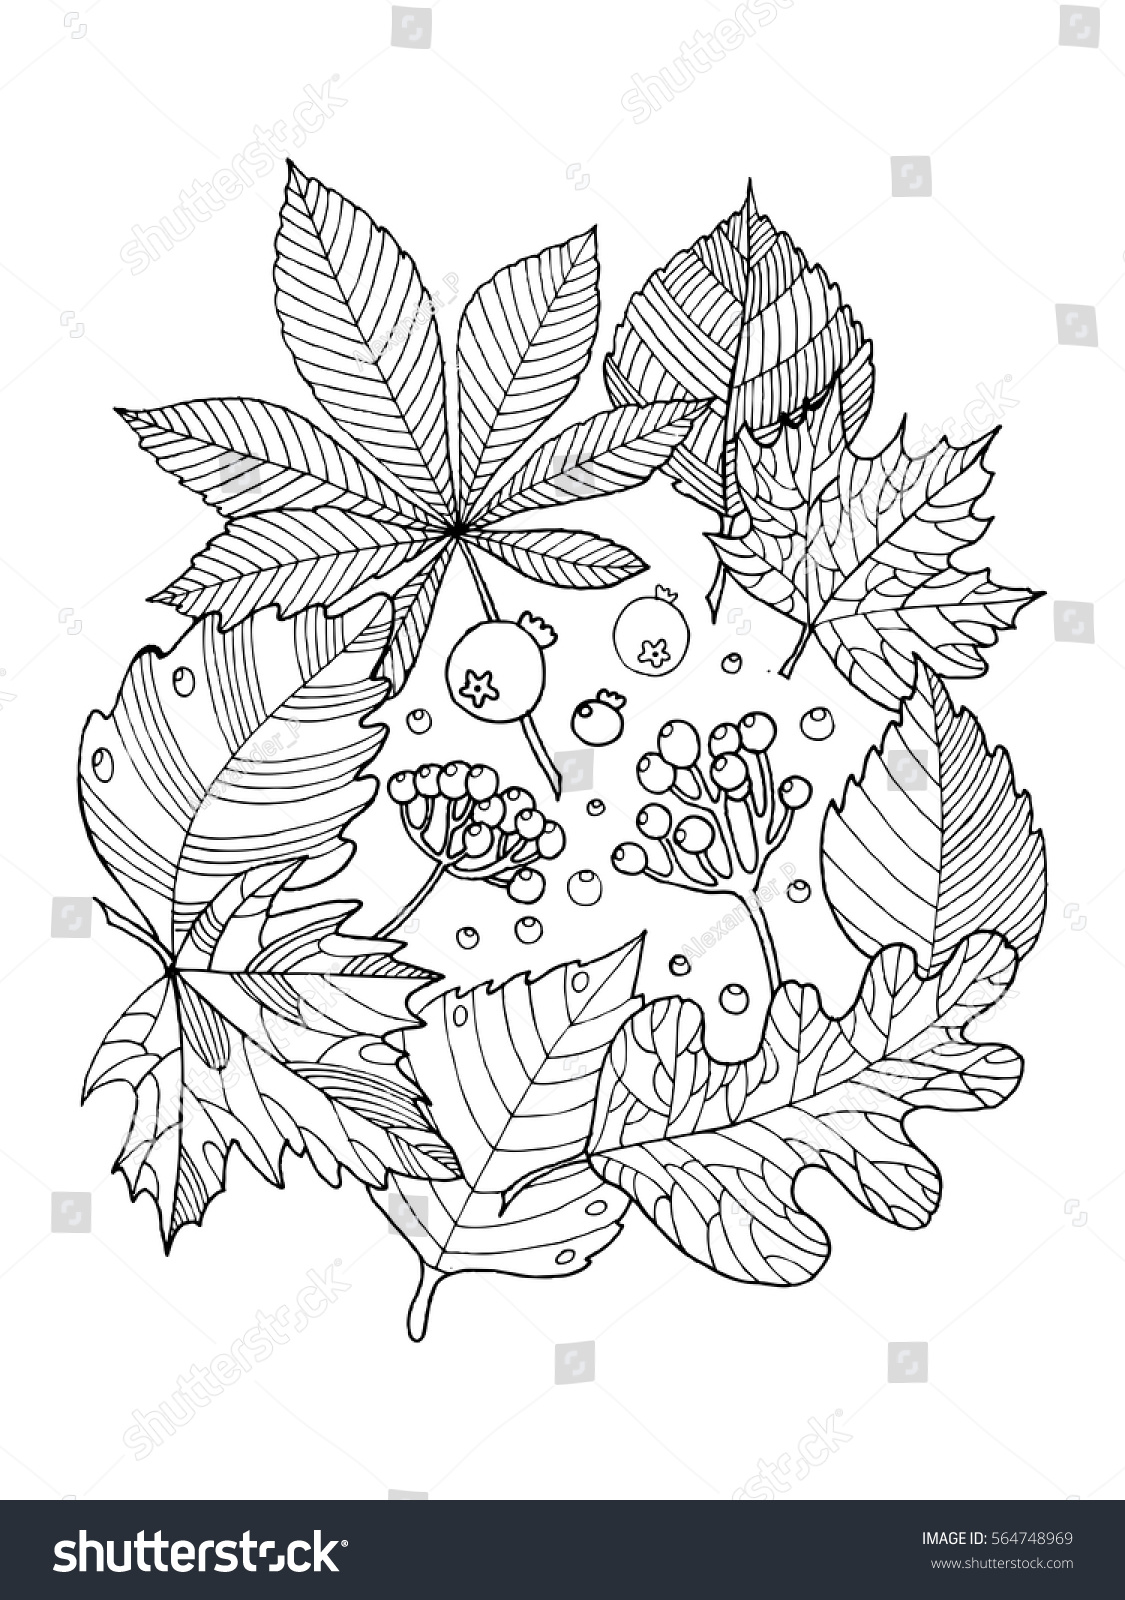 Tree Leaves Foliage Coloring Book Vector Stock Vector HD (Royalty ...